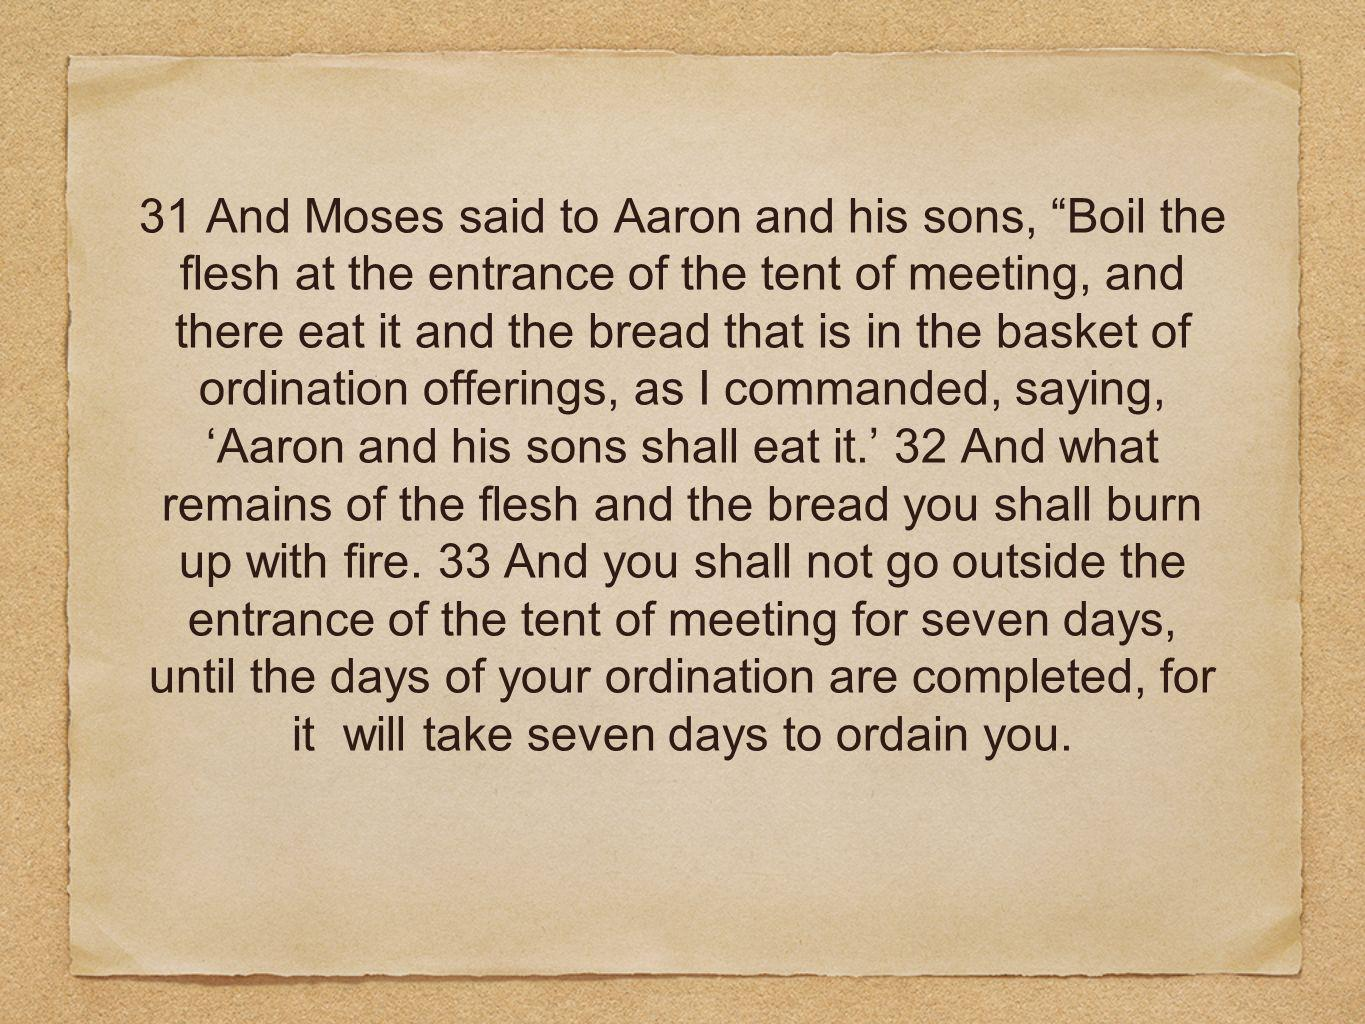 31 And Moses said to Aaron and his sons, Boil the flesh at the entrance of the tent of meeting, and there eat it and the bread that is in the basket of ordination offerings, as I commanded, saying, 'Aaron and his sons shall eat it.' 32 And what remains of the flesh and the bread you shall burn up with fire.